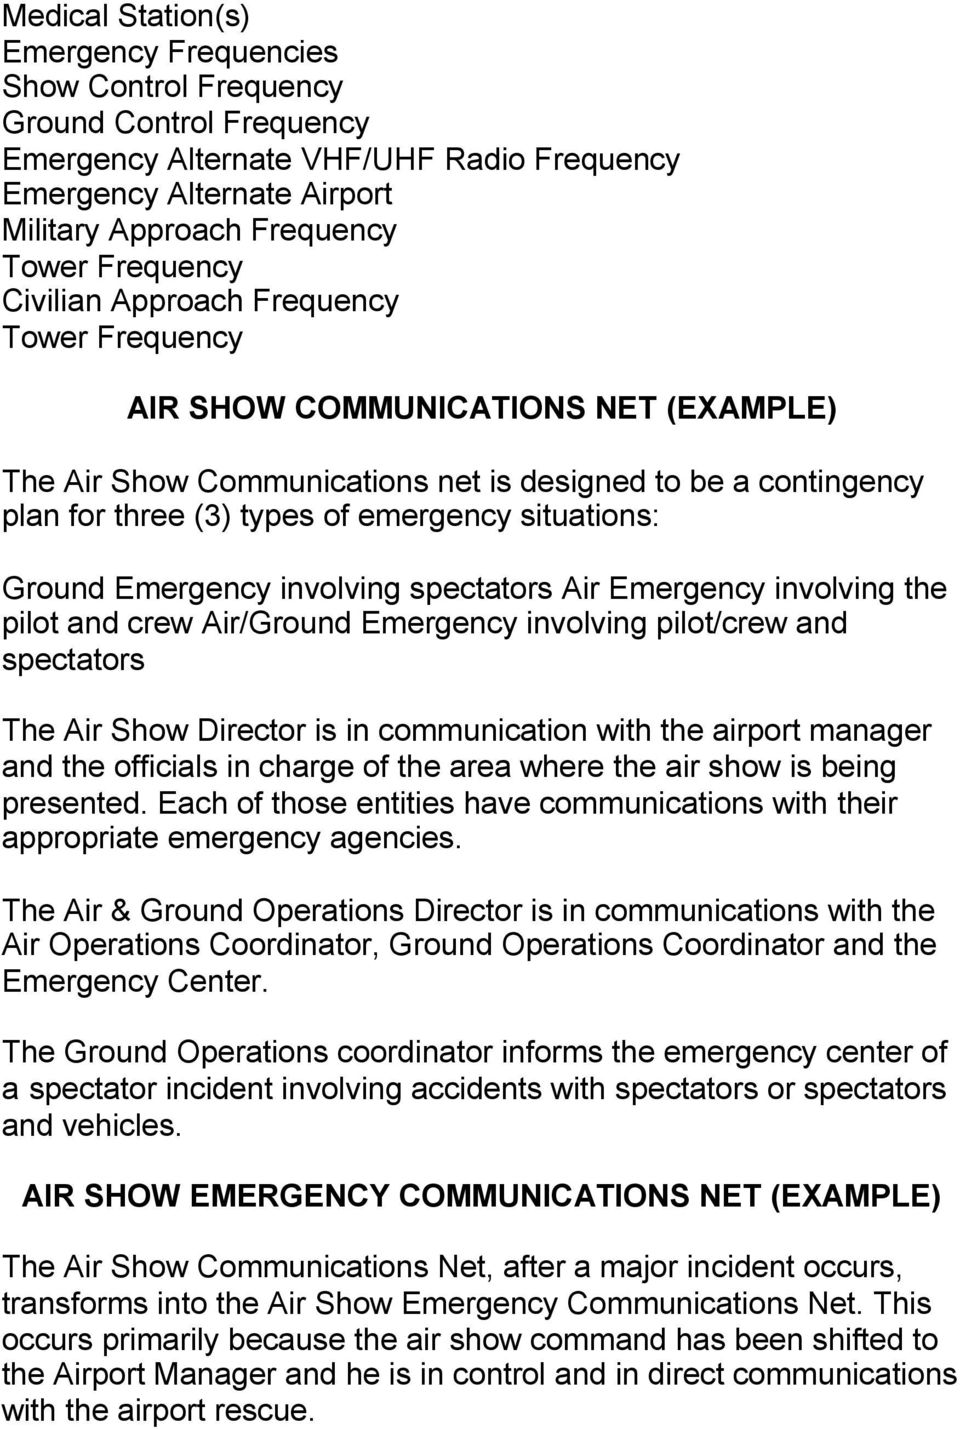 situations: Ground Emergency involving spectators Air Emergency involving the pilot and crew Air/Ground Emergency involving pilot/crew and spectators The Air Show Director is in communication with